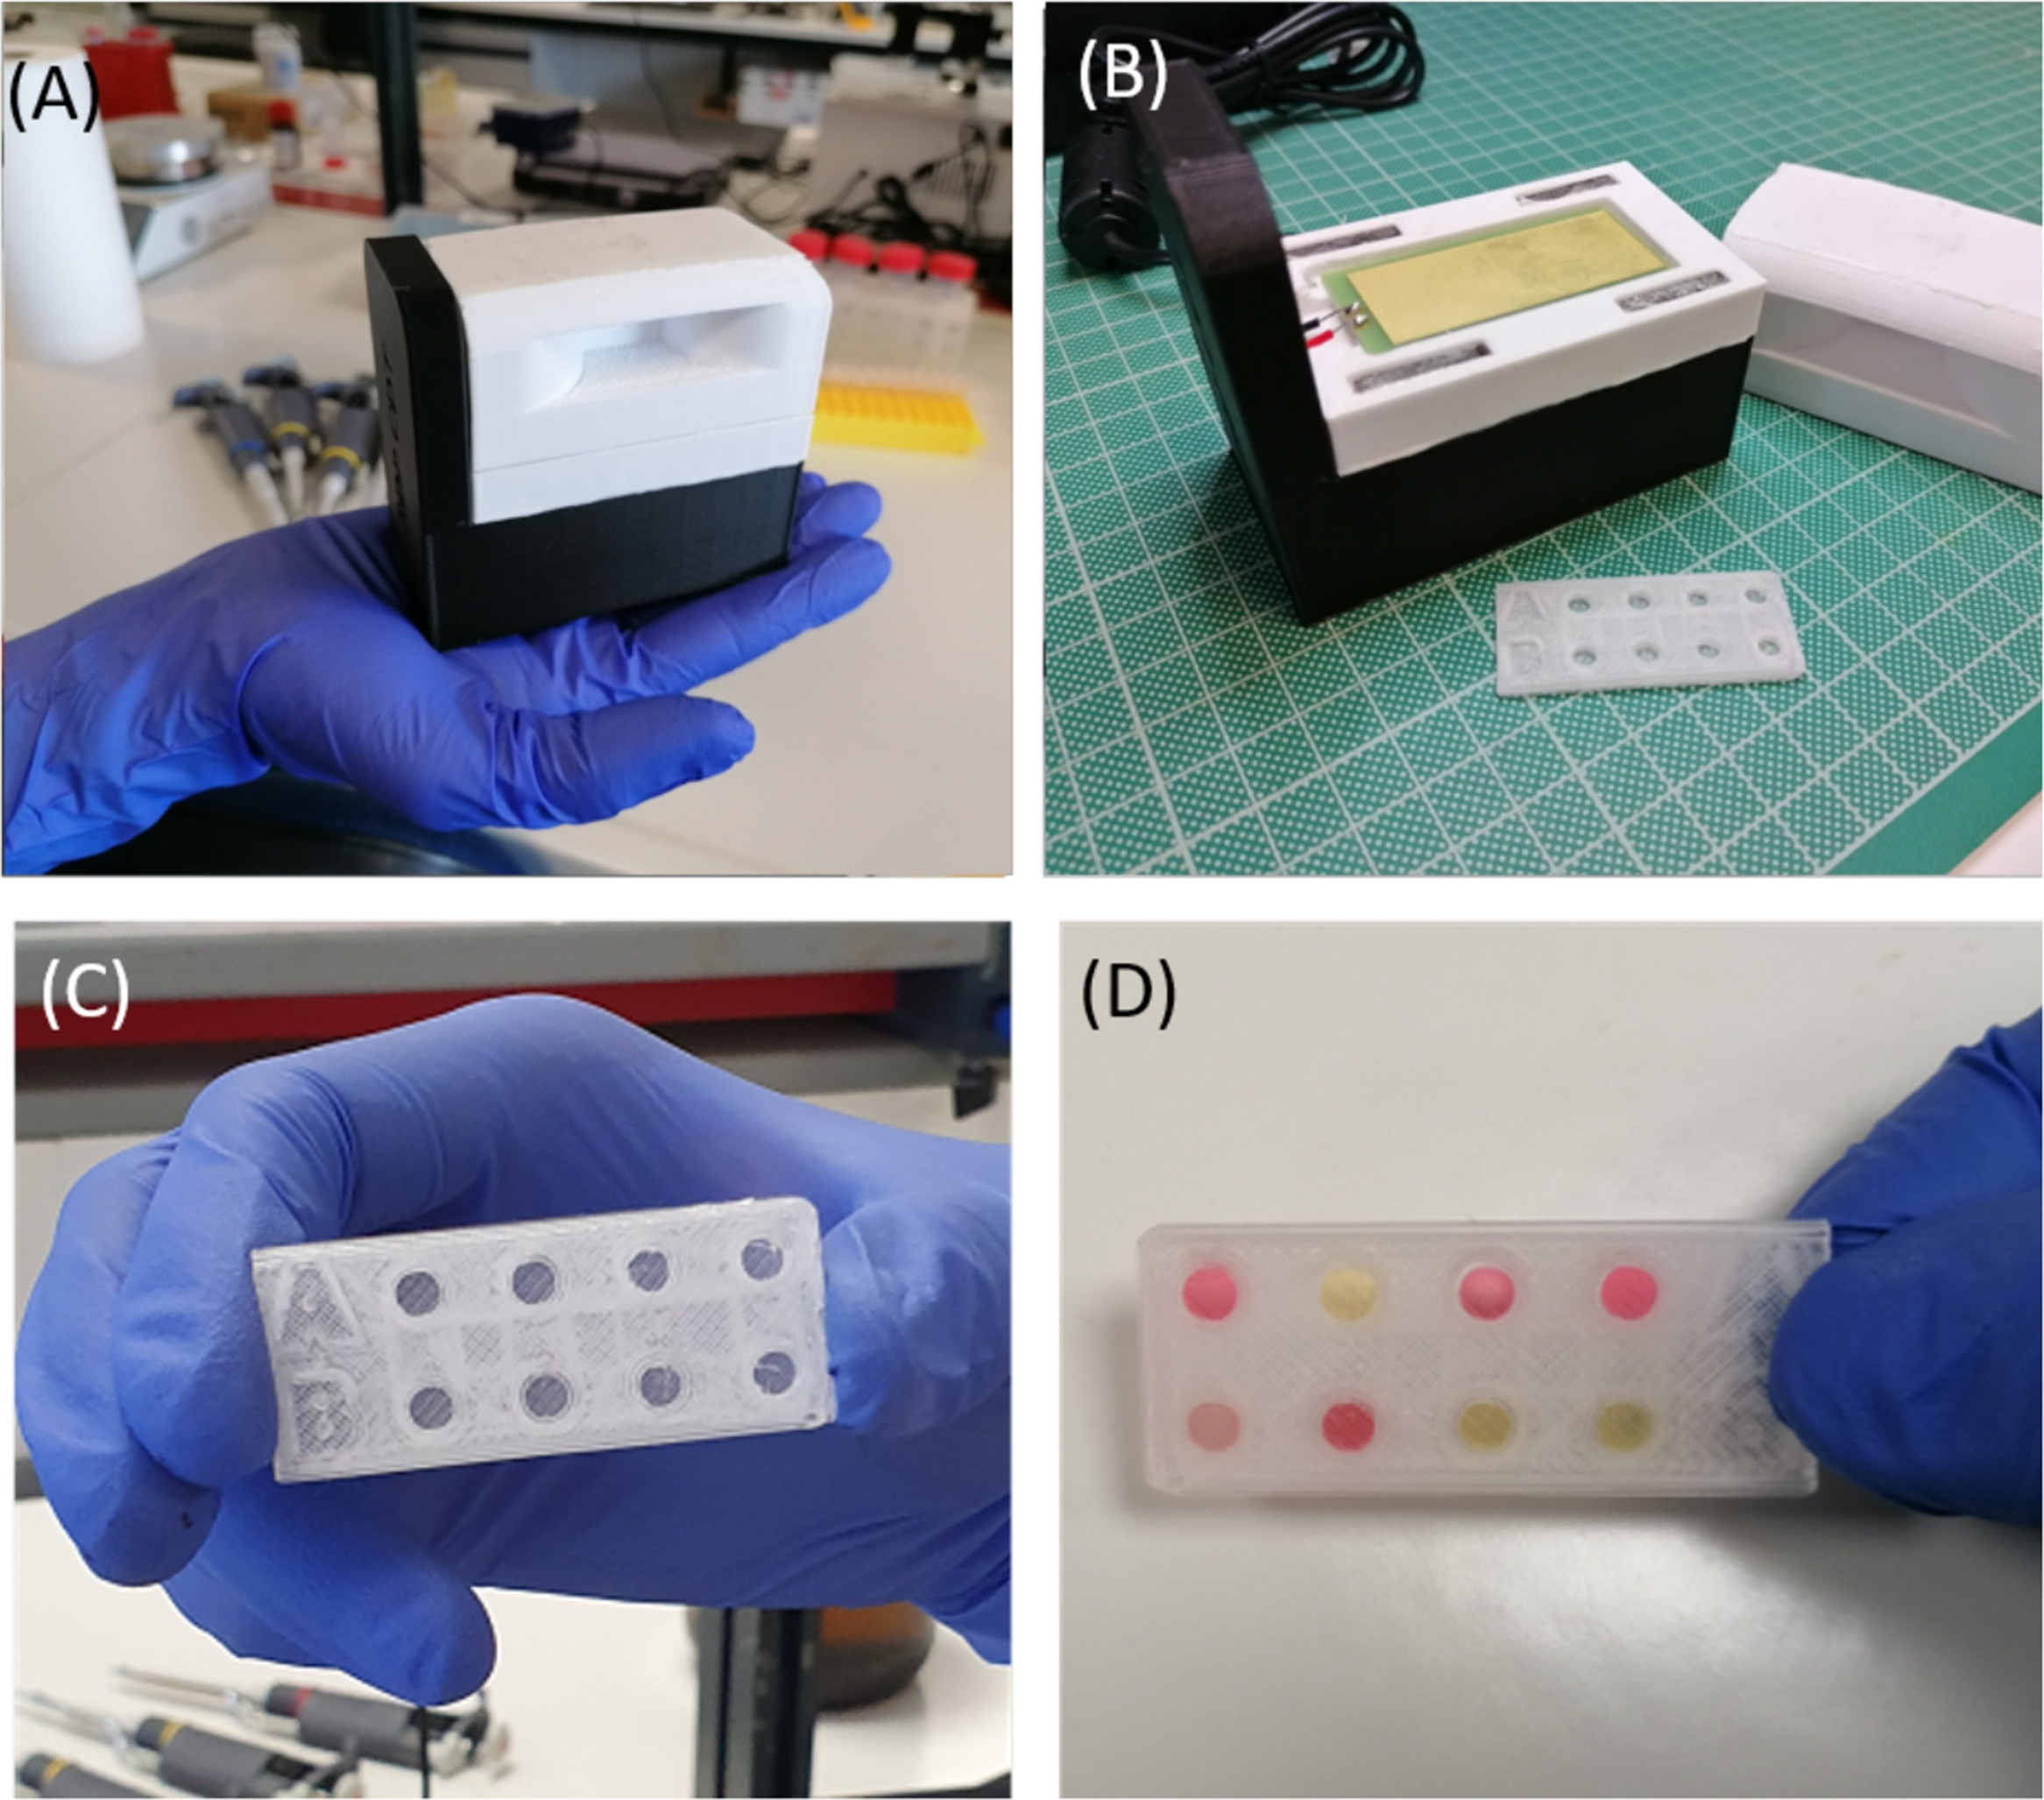 The 3D printed DNA amplification device containing a magnet and PCB heater. Photos via University of Crete.